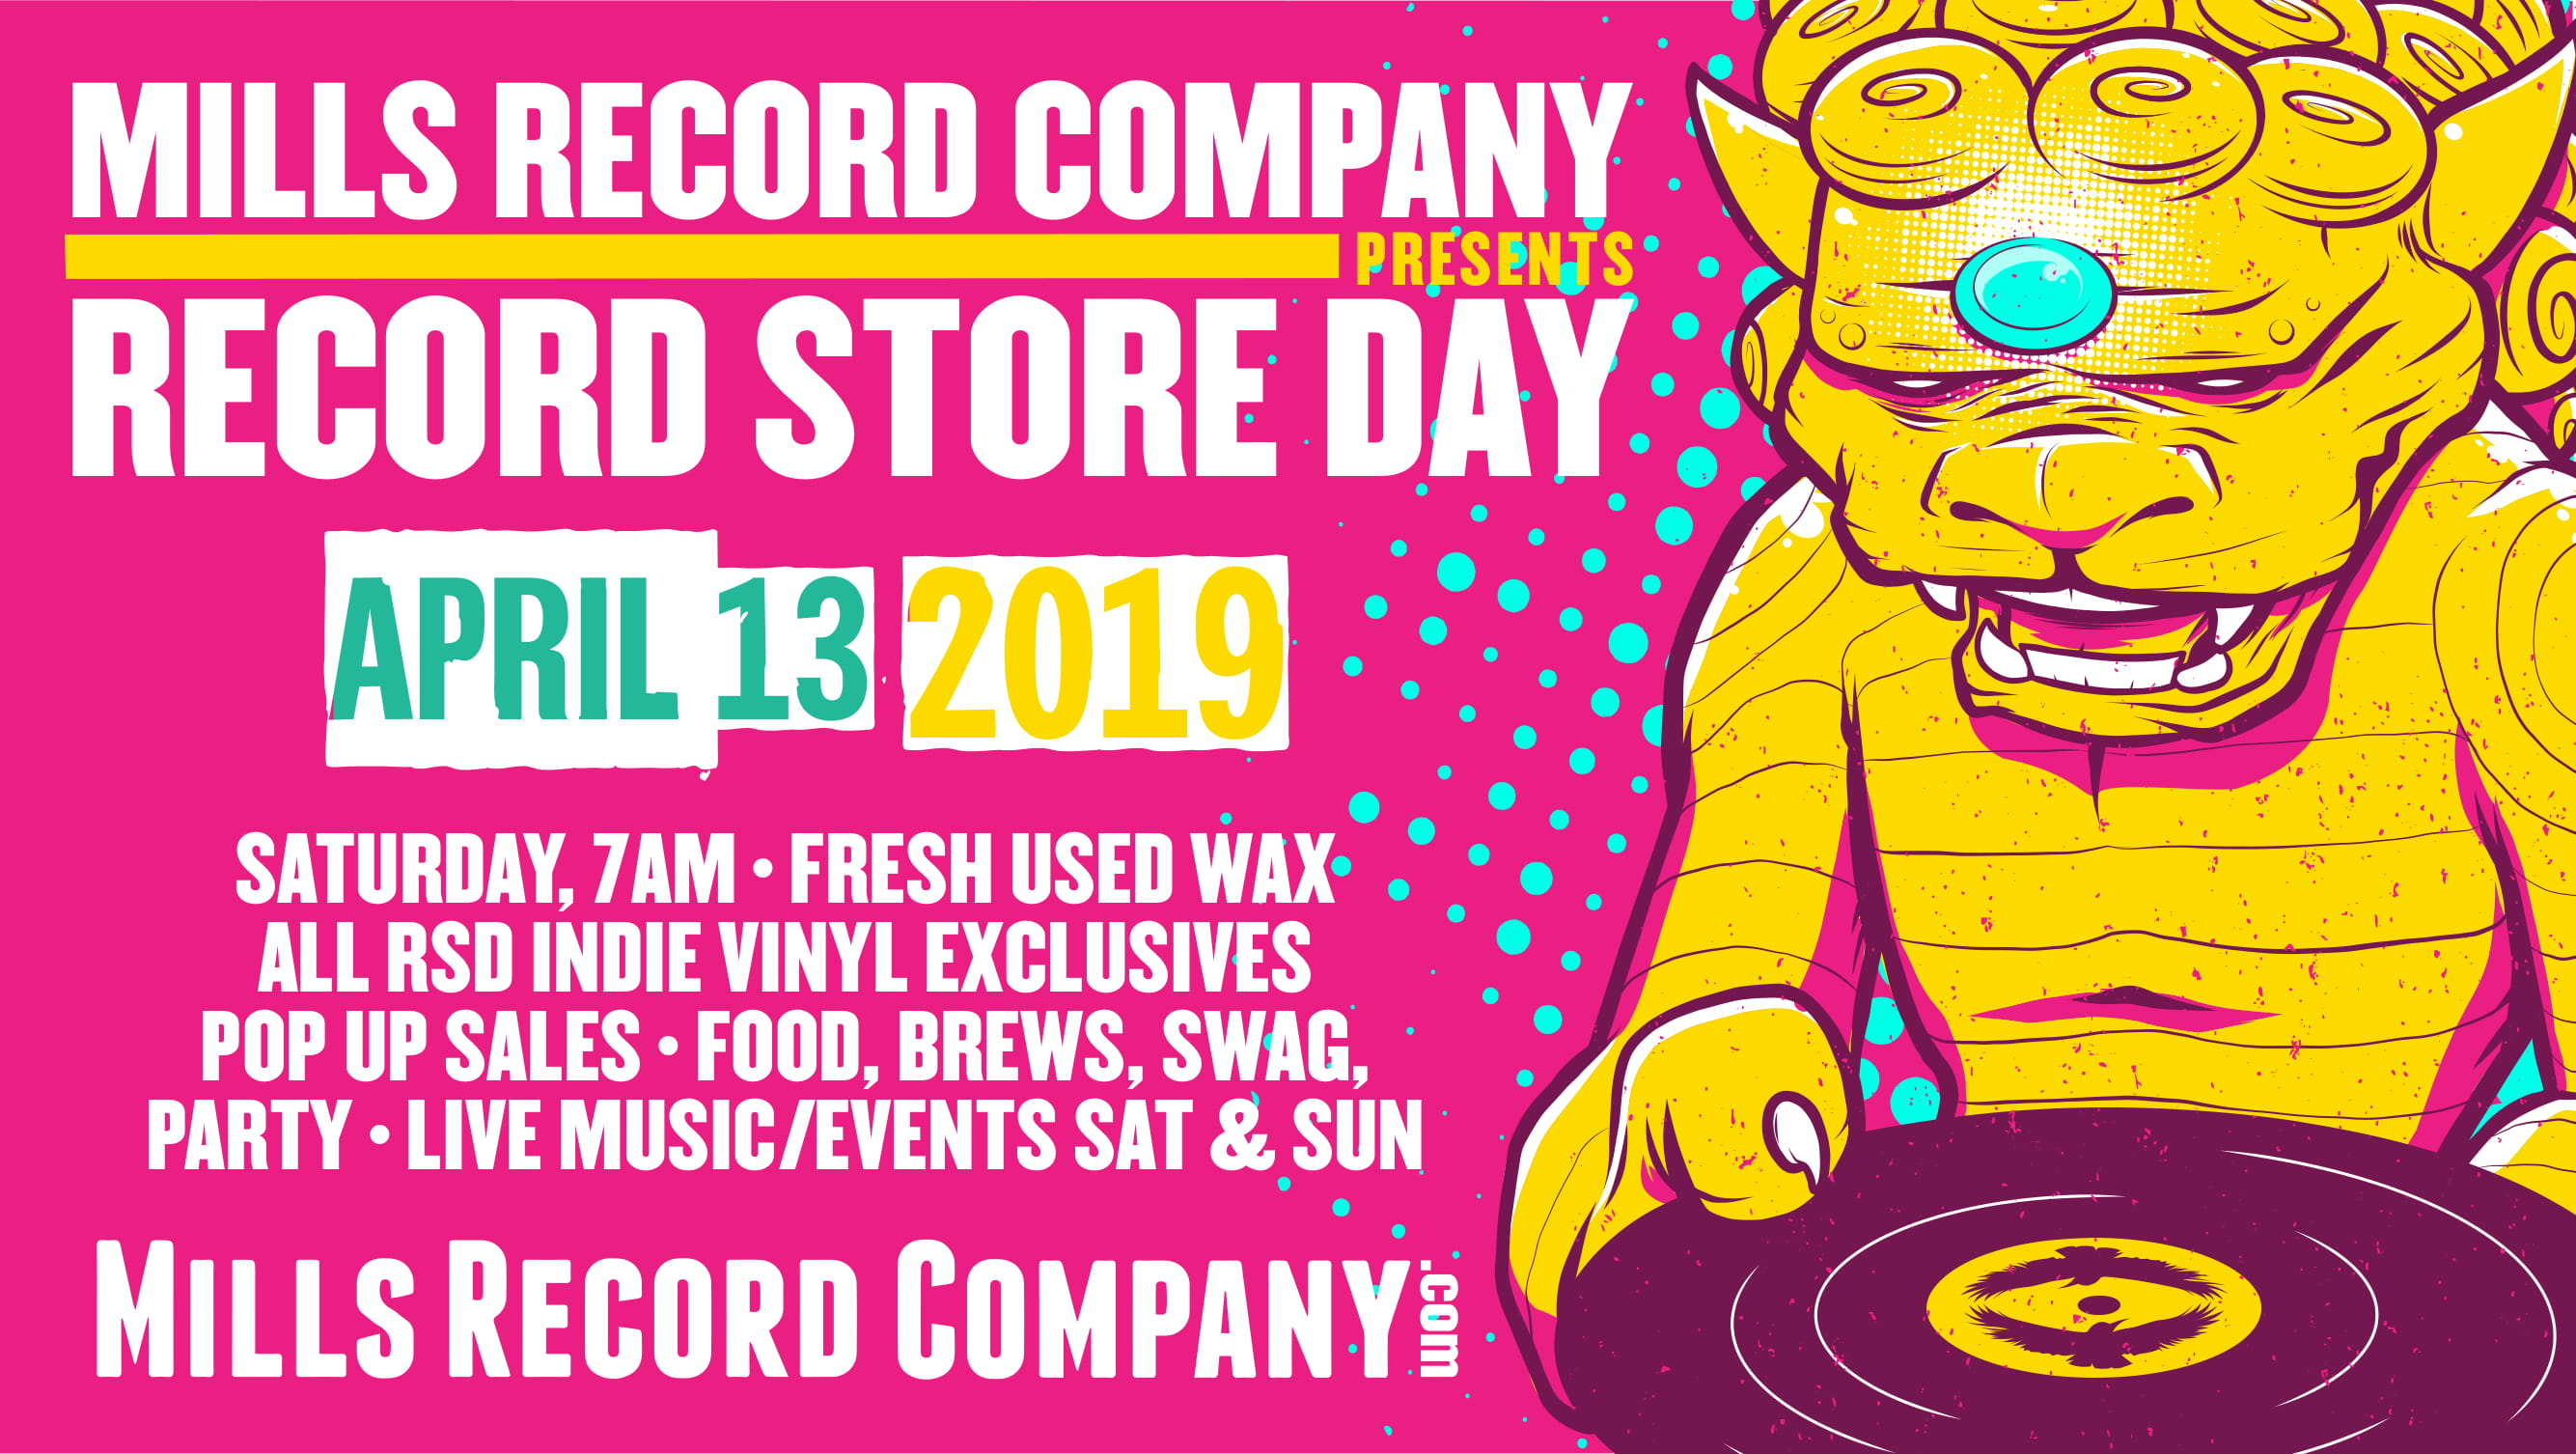 Record Store Day 2019 at Mills Record Company